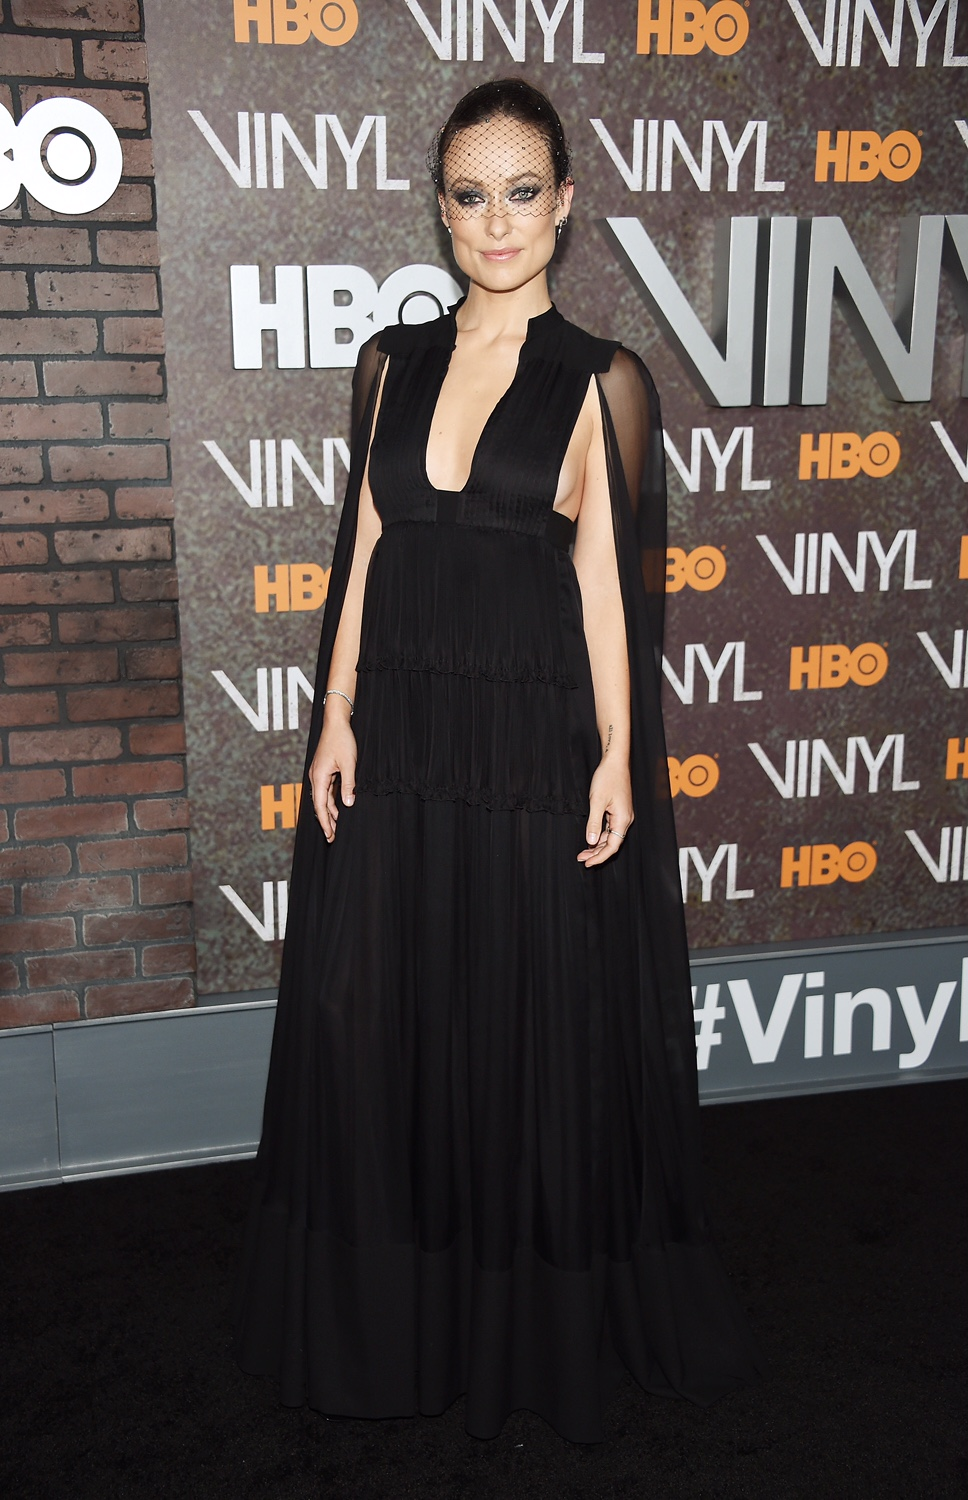 Olivia Wilde in a black Valentino gown at the Vinyl premiere